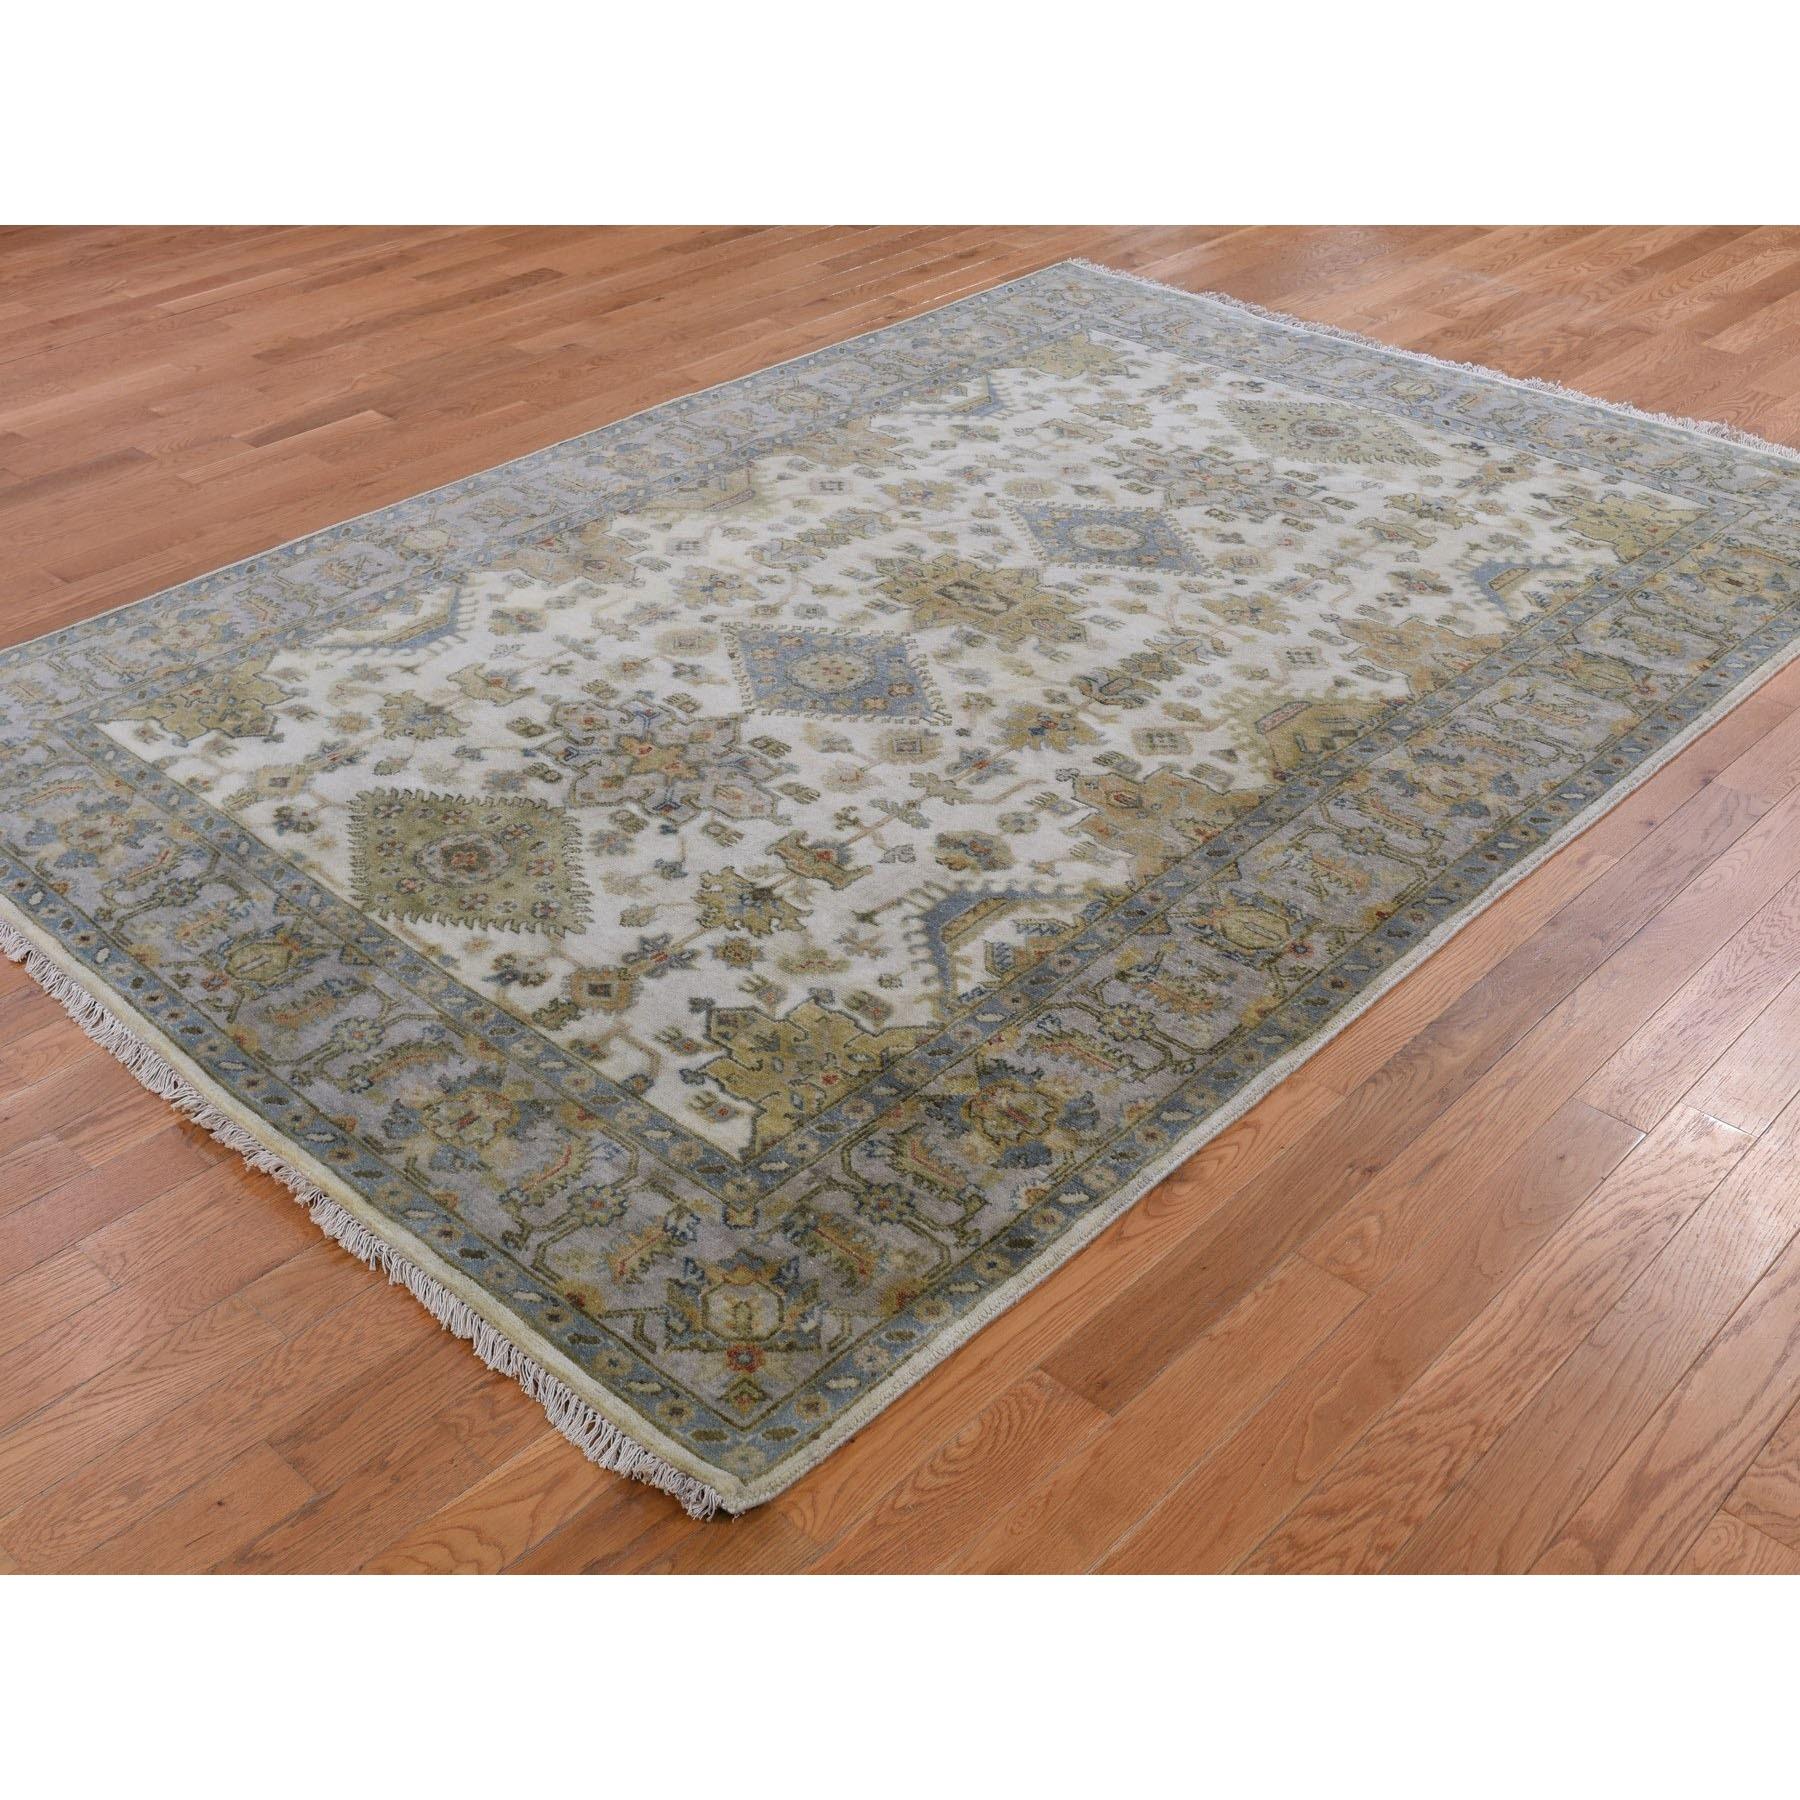 """5'x6'10"""" Ivory Karajeh Design Pure Wool Hand Knotted Oriental Rug"""